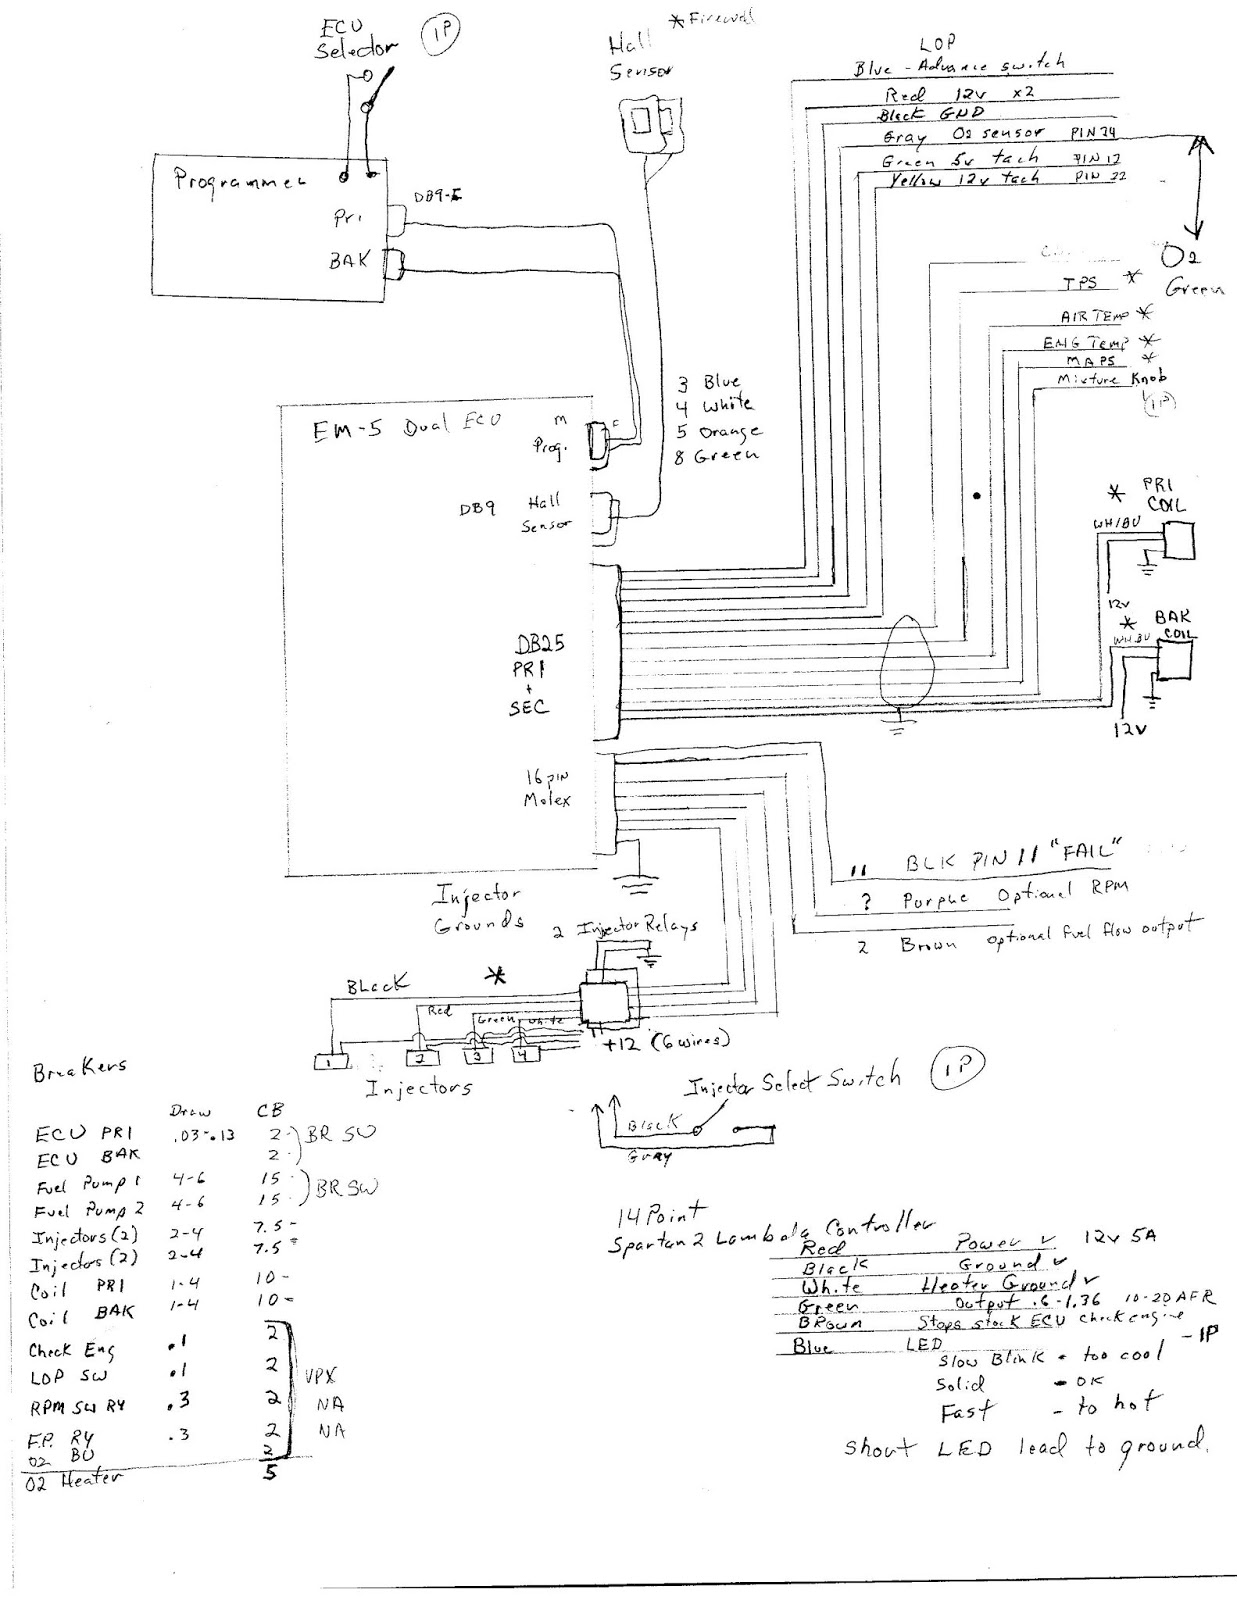 medium resolution of pin assignments for firewall bulkhead connectors and other electrical wiring info